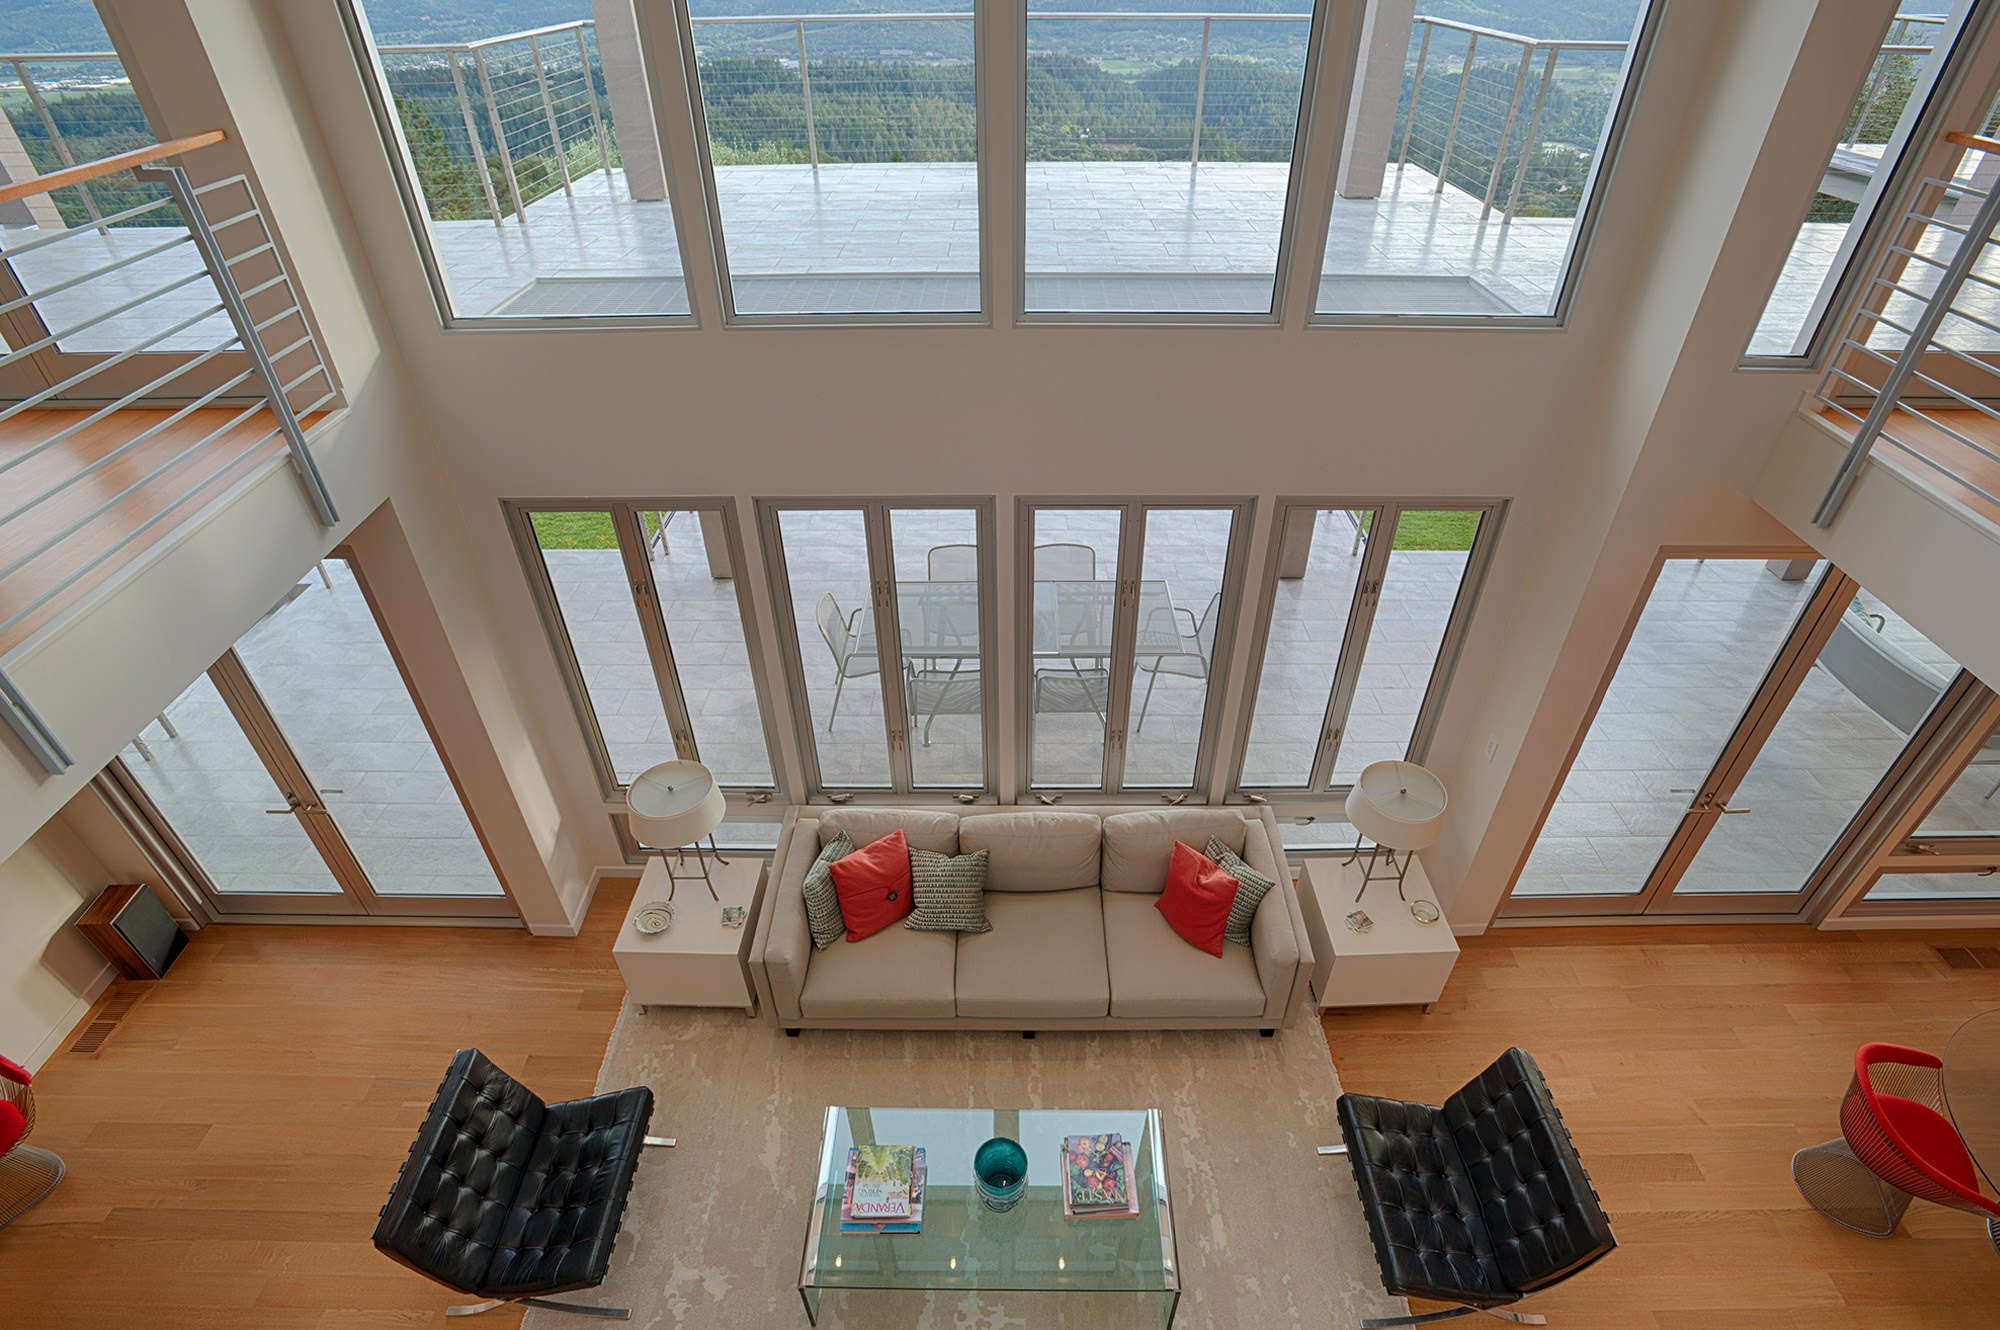 Large windows overlooking Vineyards